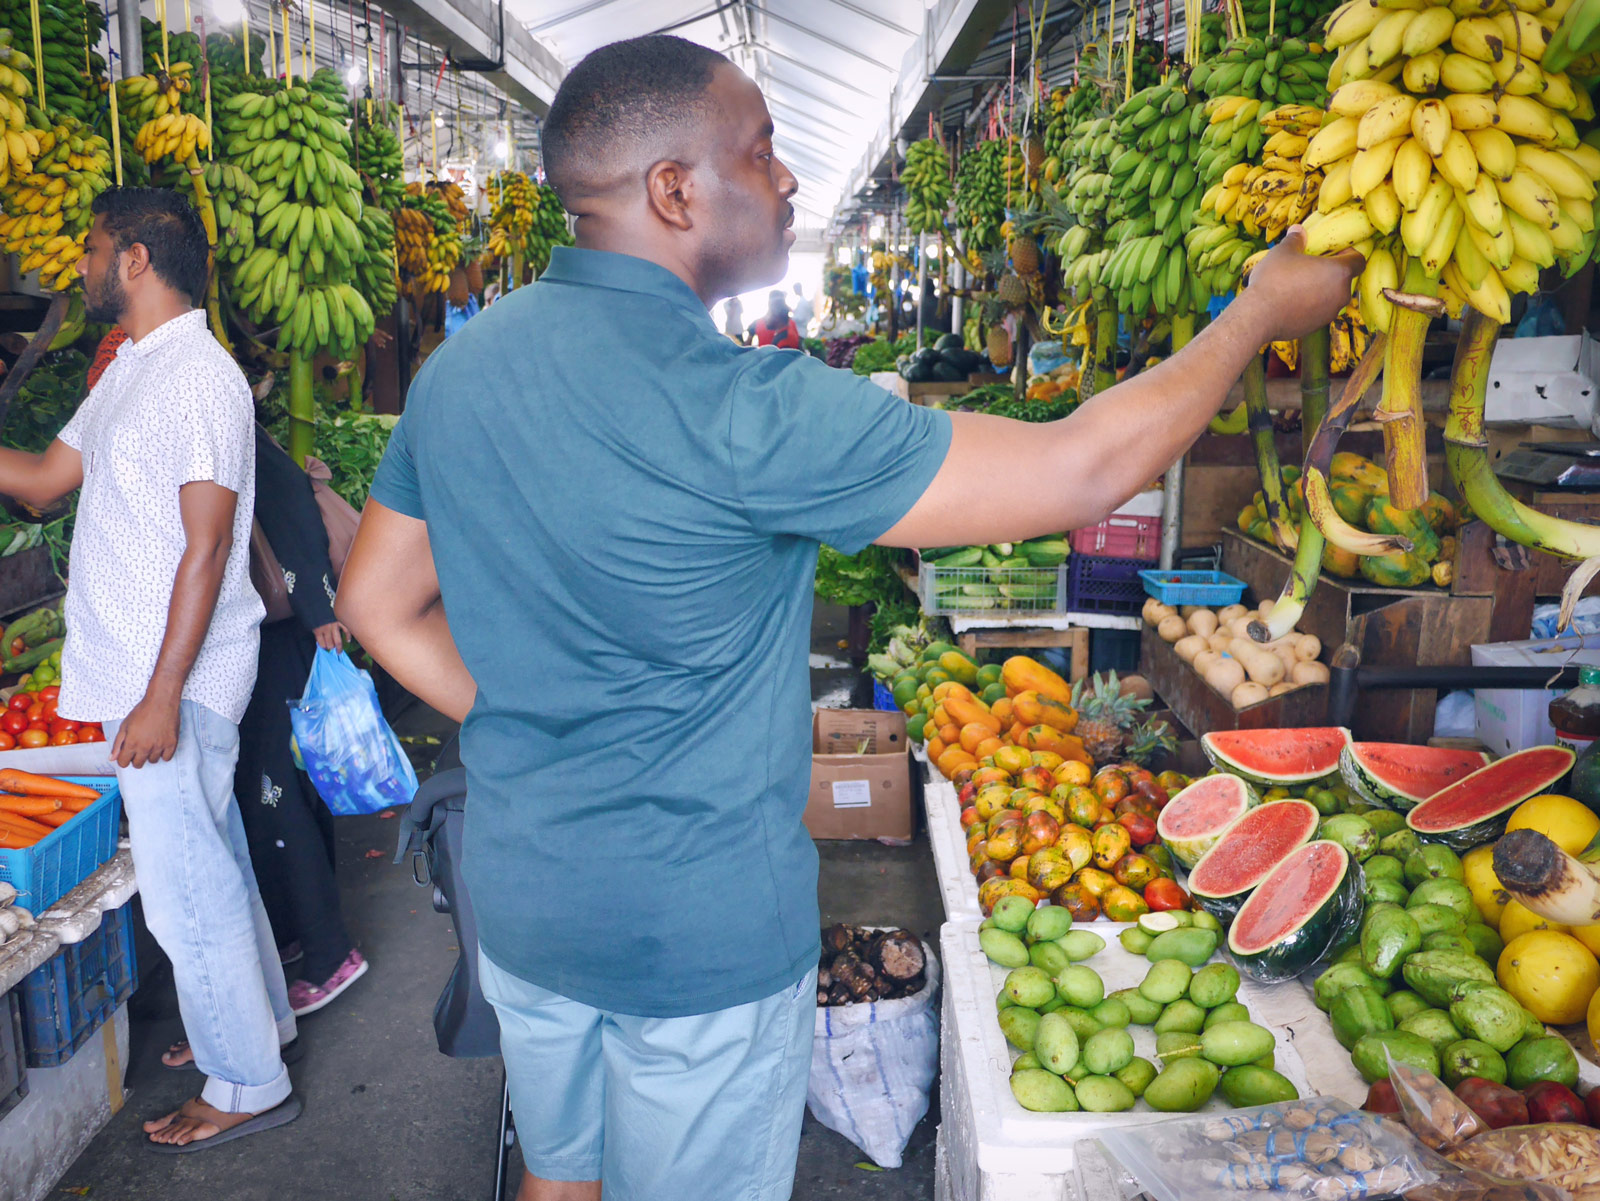 Dhathuruveringe Market: Local Fruit & Vegetables - The Maldives, The Maldives